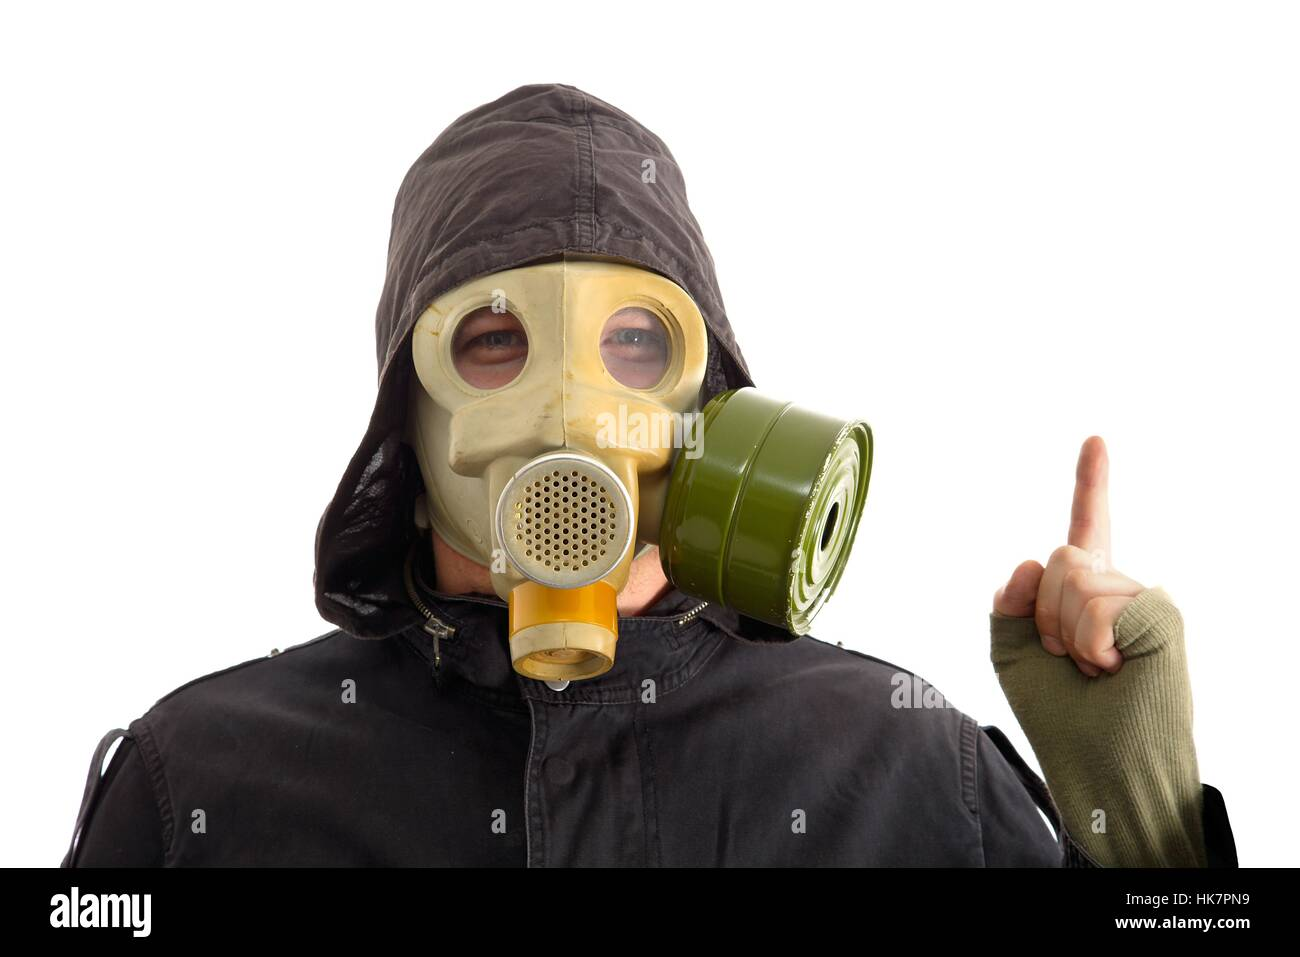 Laughing Gas Mask